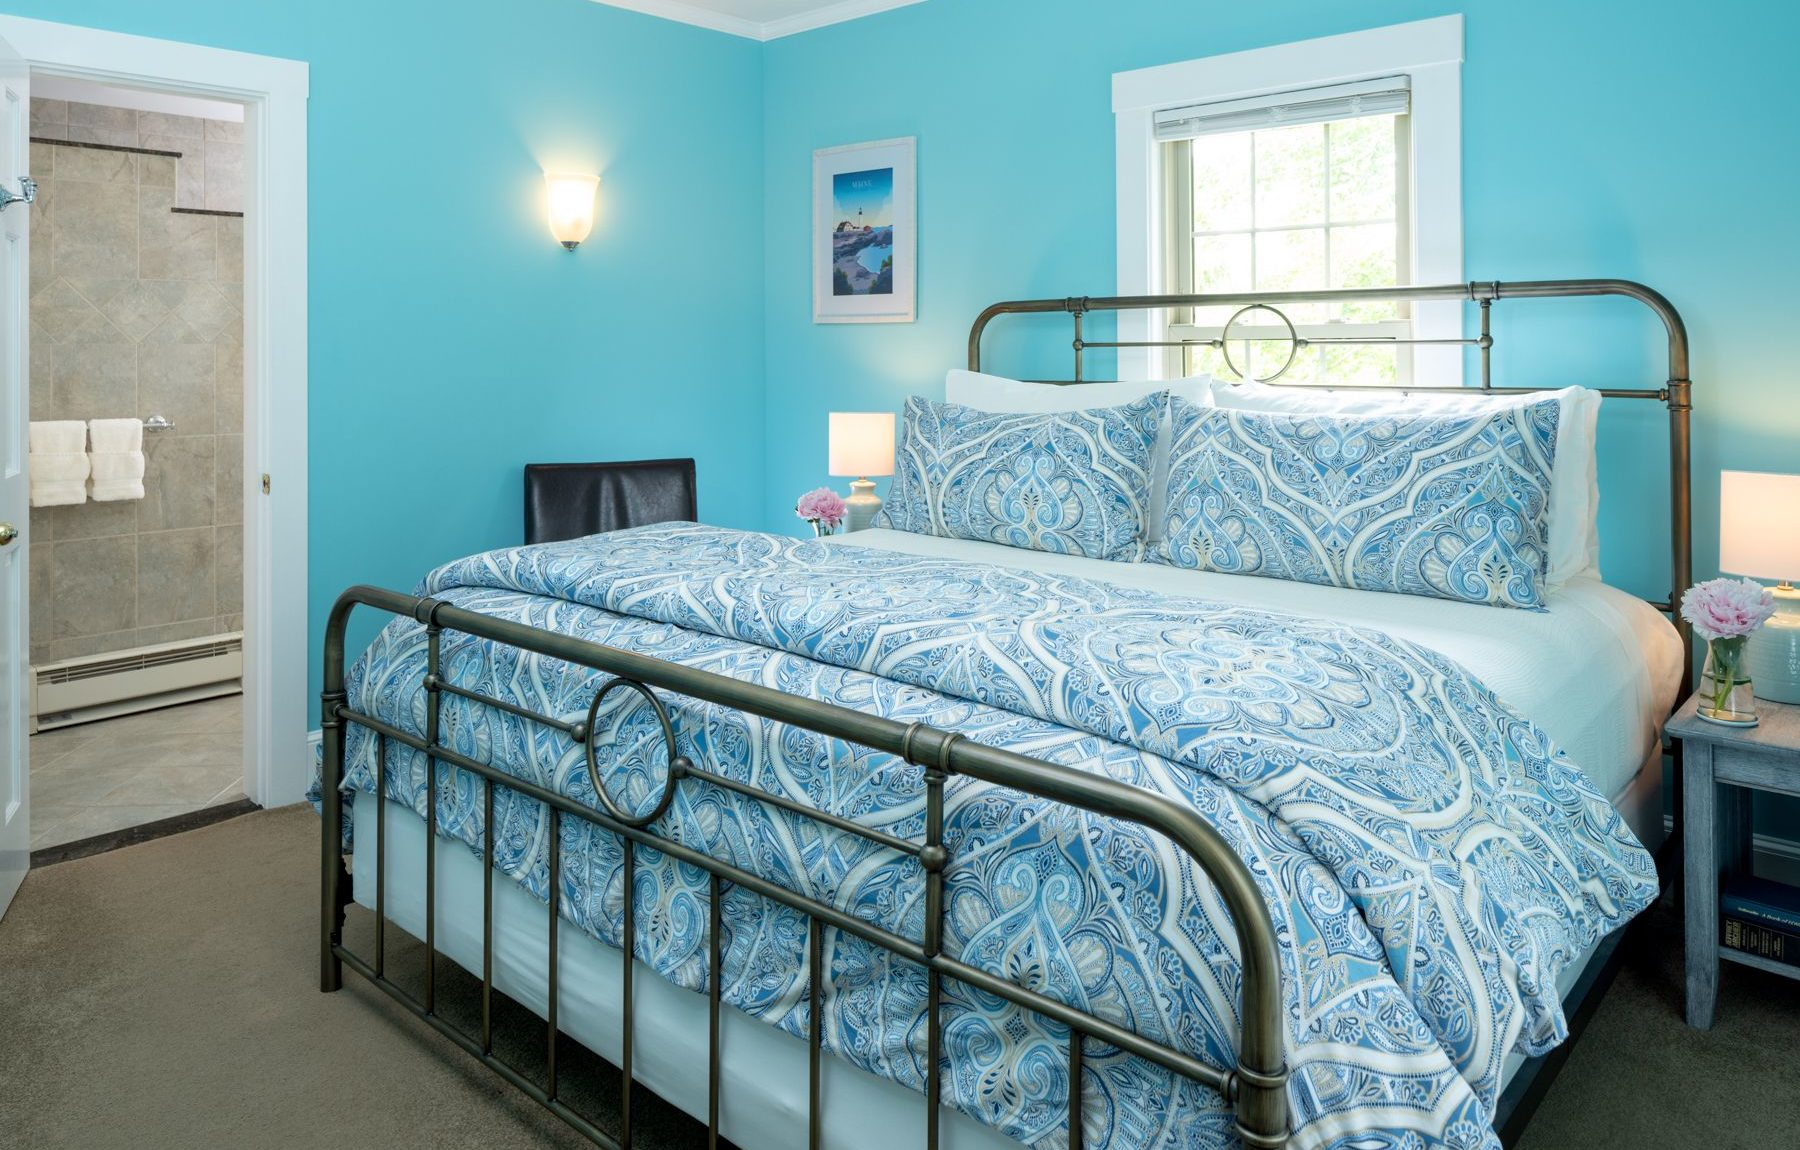 Metal bed with blue paisley duvet and bedside table with lamp